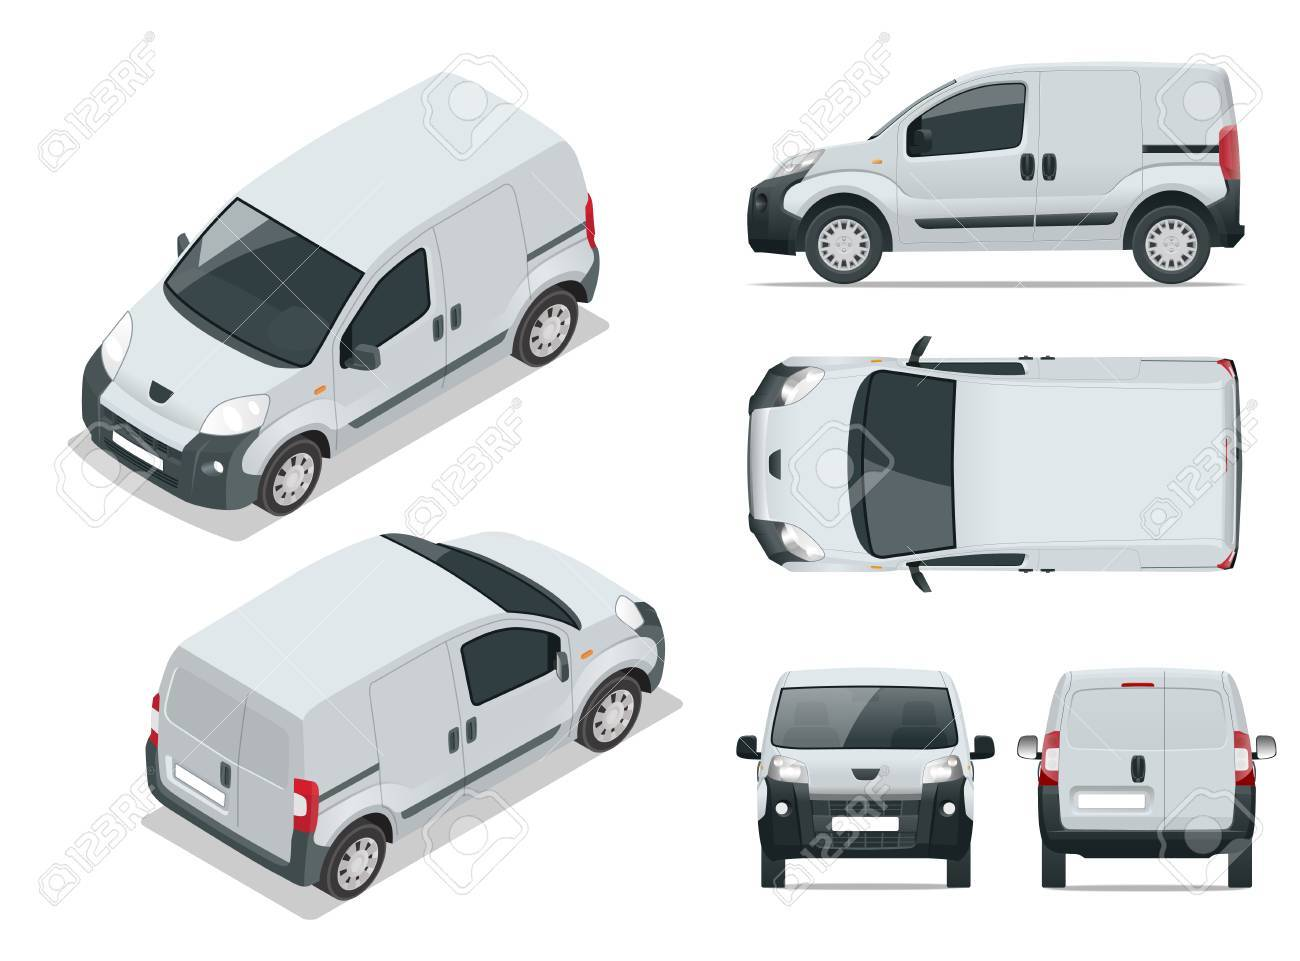 Small Van Car  Isolated car, template for car branding and advertising